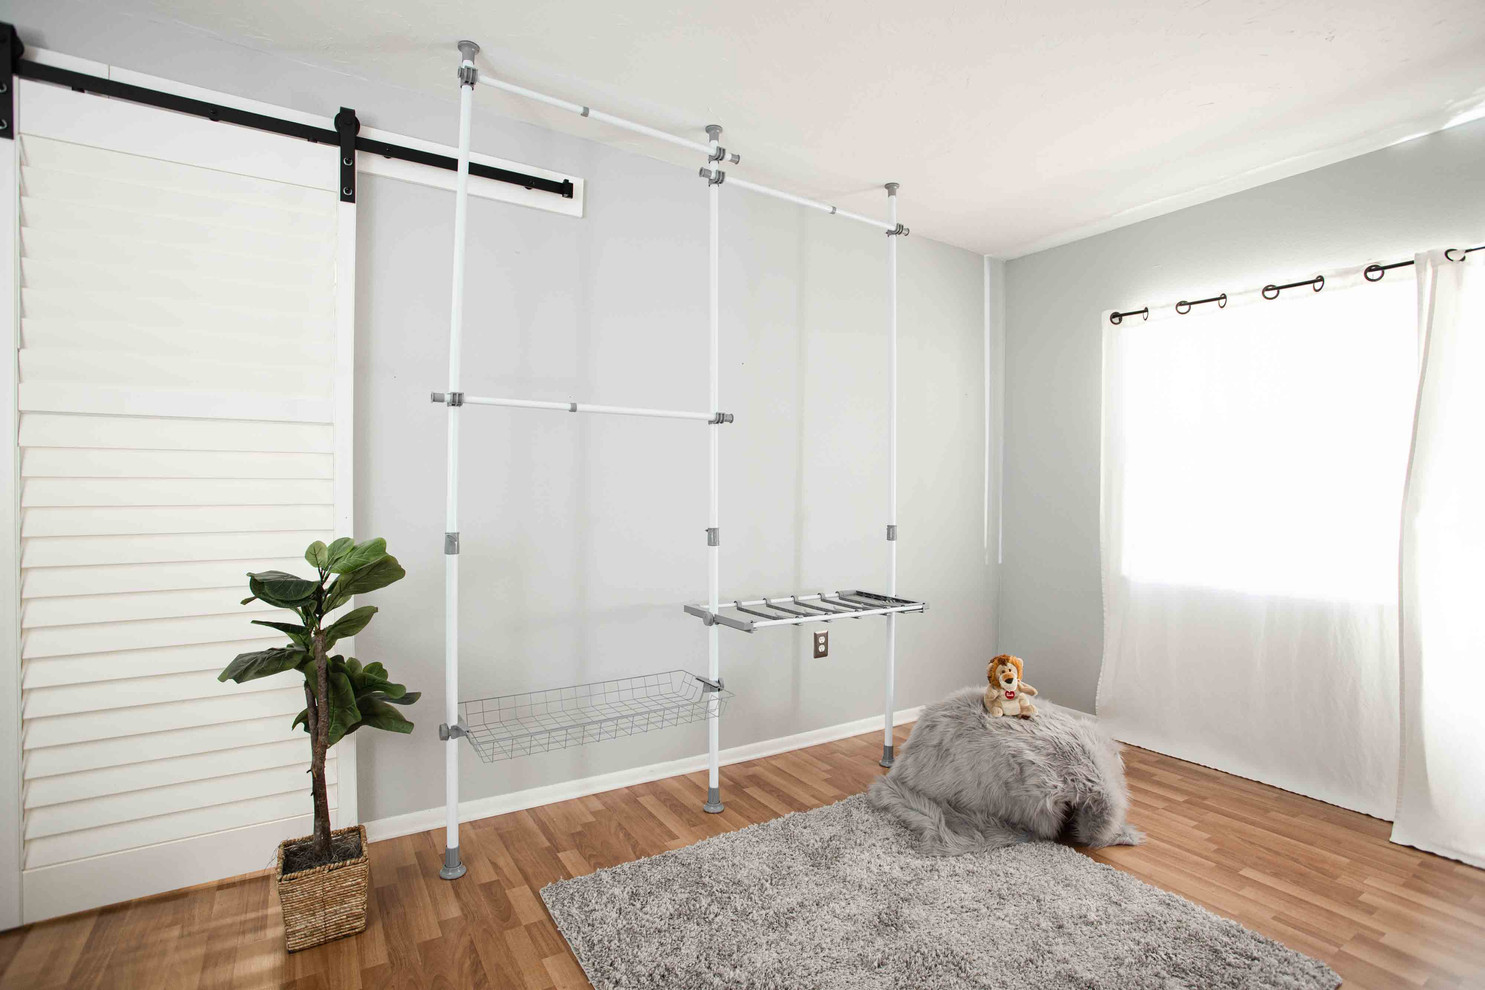 Amazon Product Photography - Closet Organizer